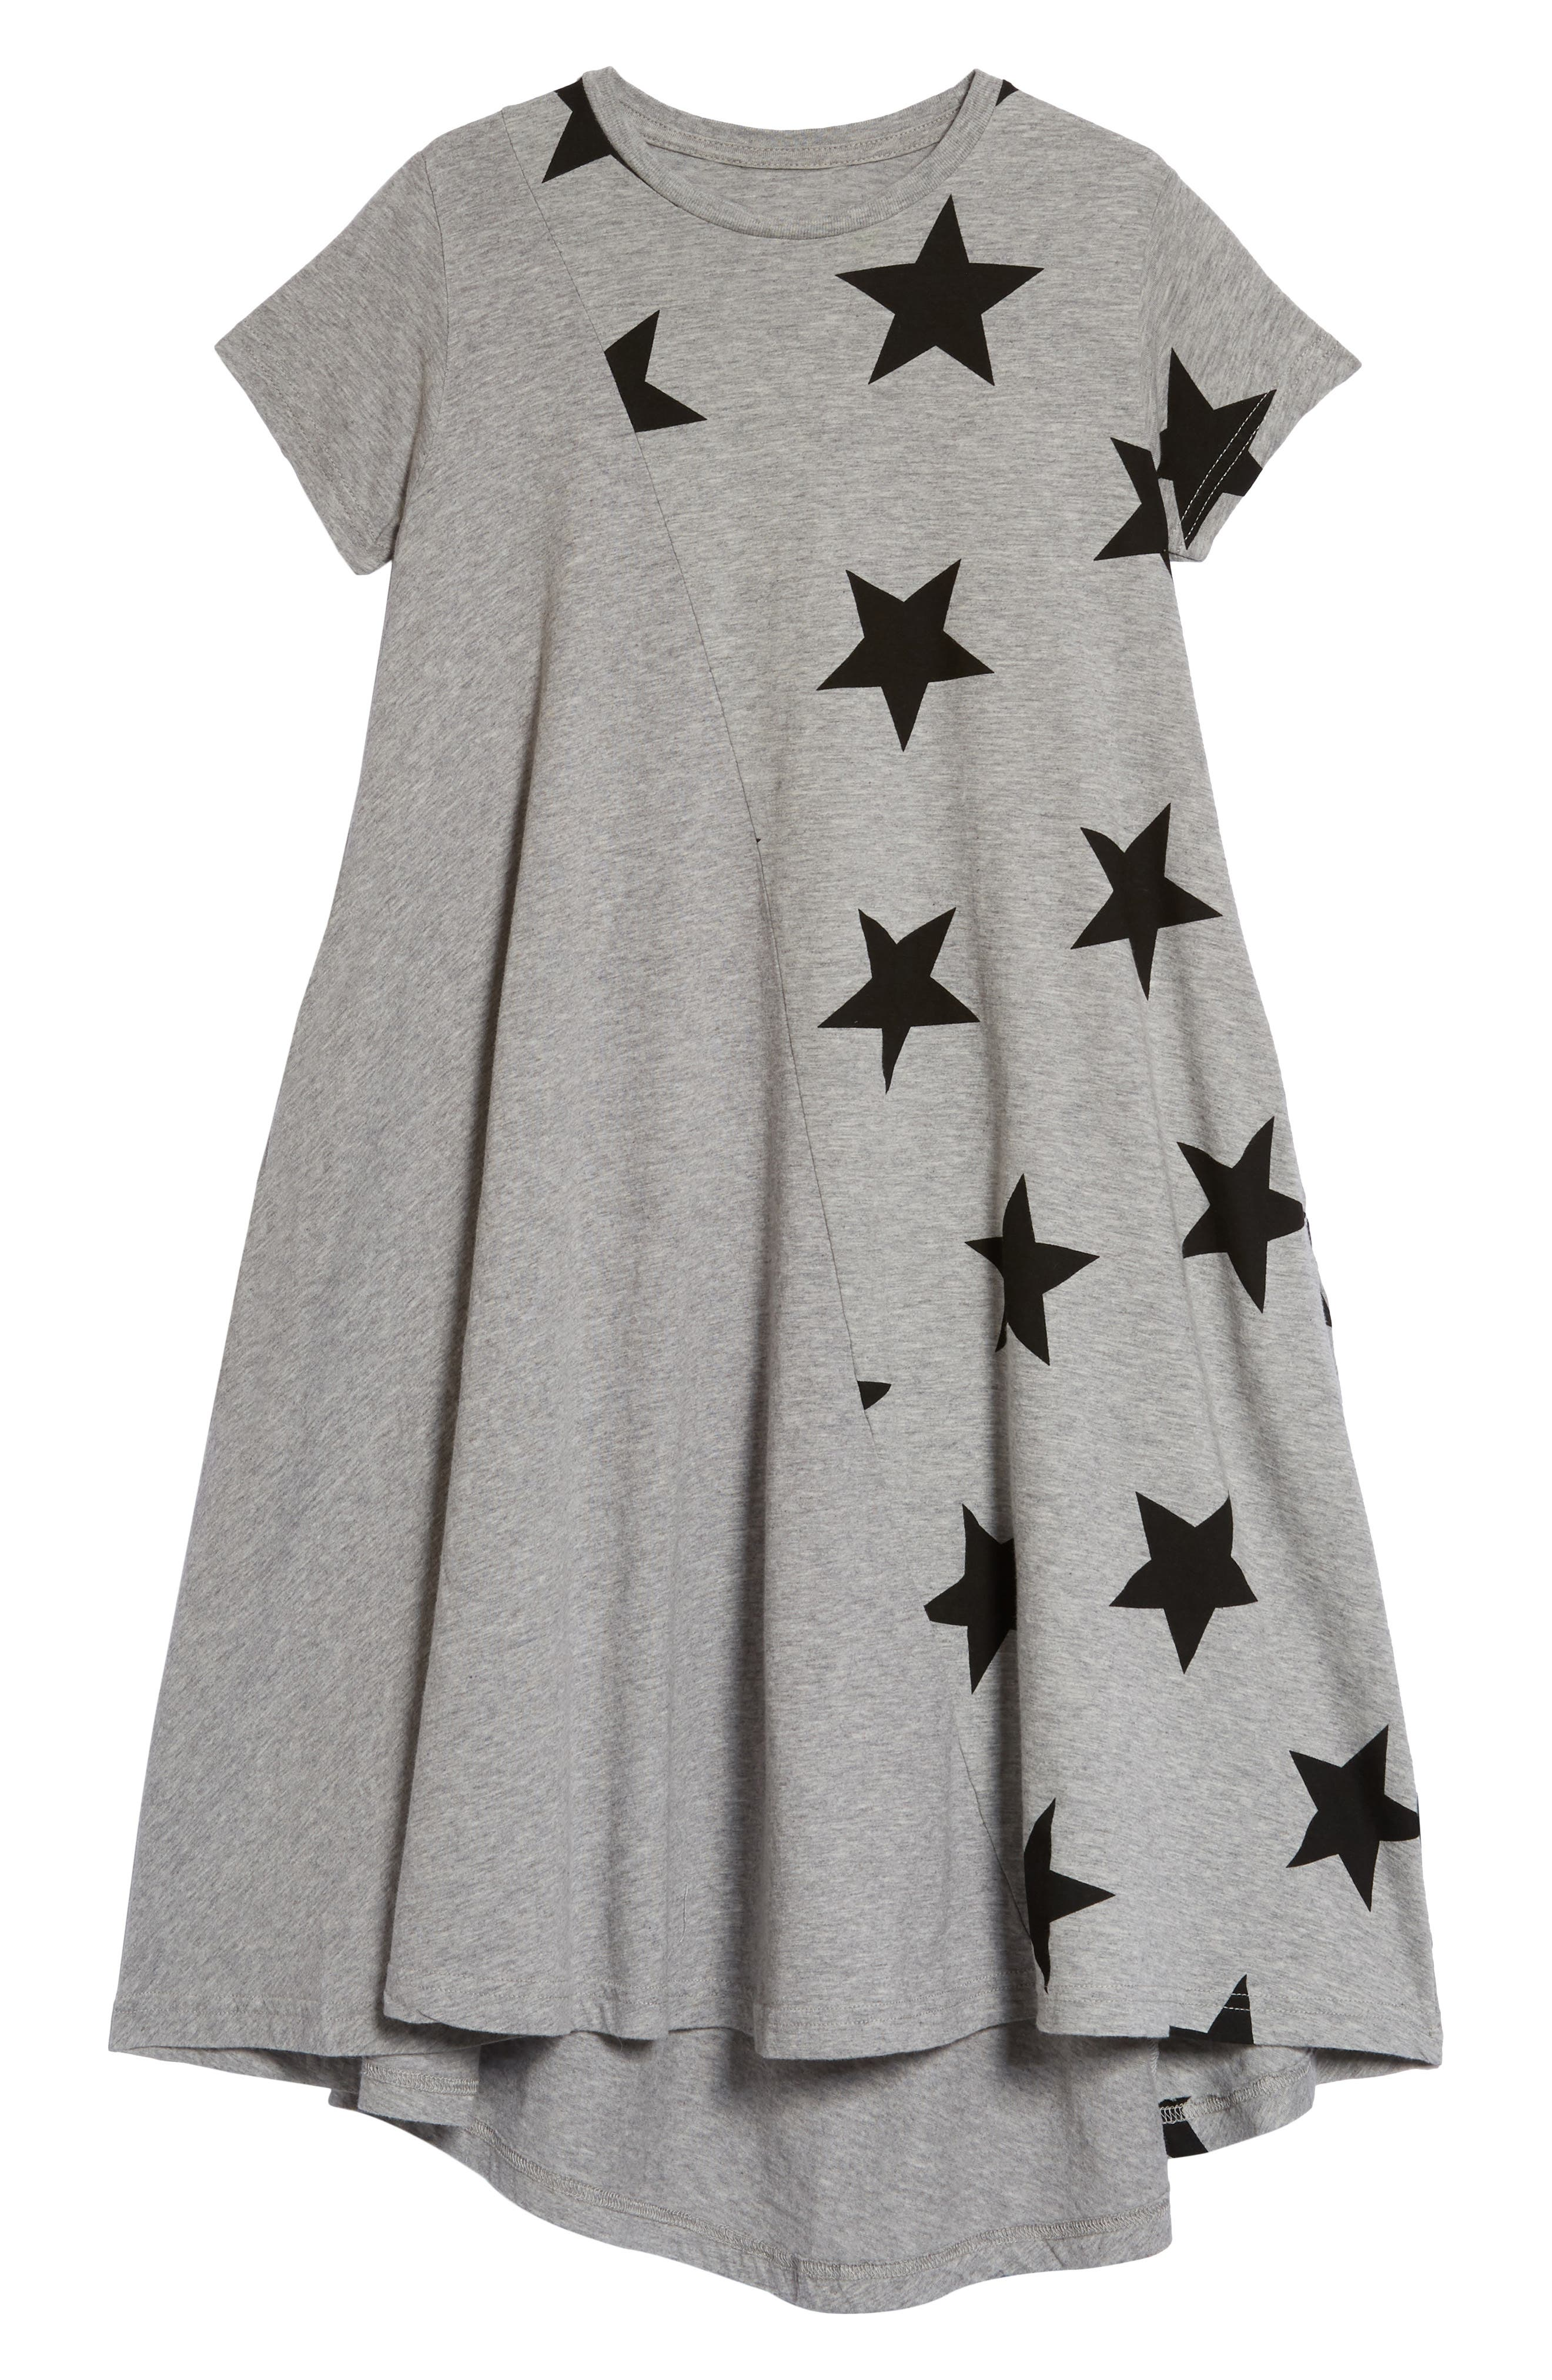 360 Star Print Dress,                         Main,                         color, Heather Grey